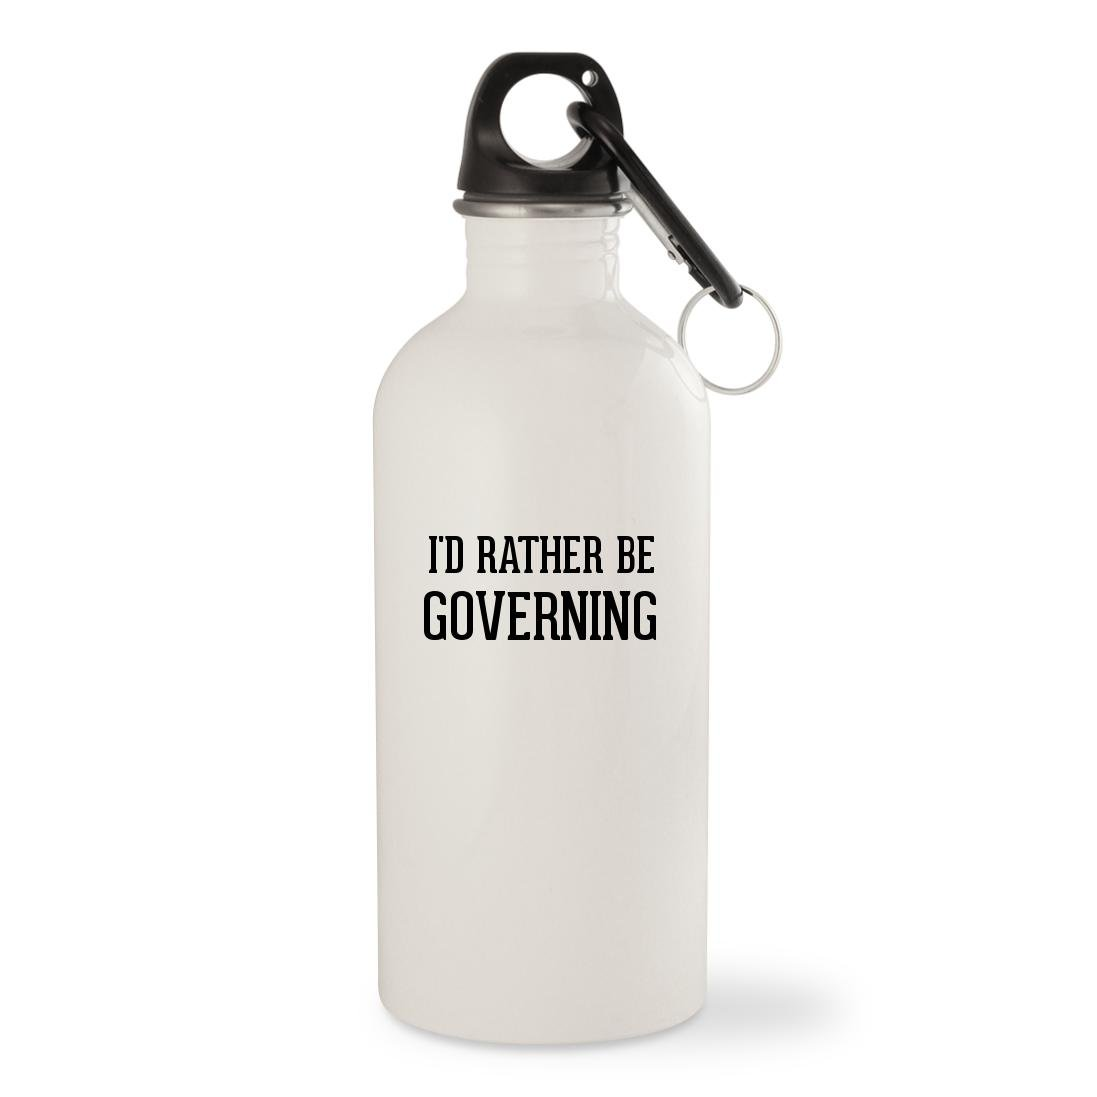 I'd Rather Be GOVERNING - White 20oz Stainless Steel Water Bottle with Carabiner